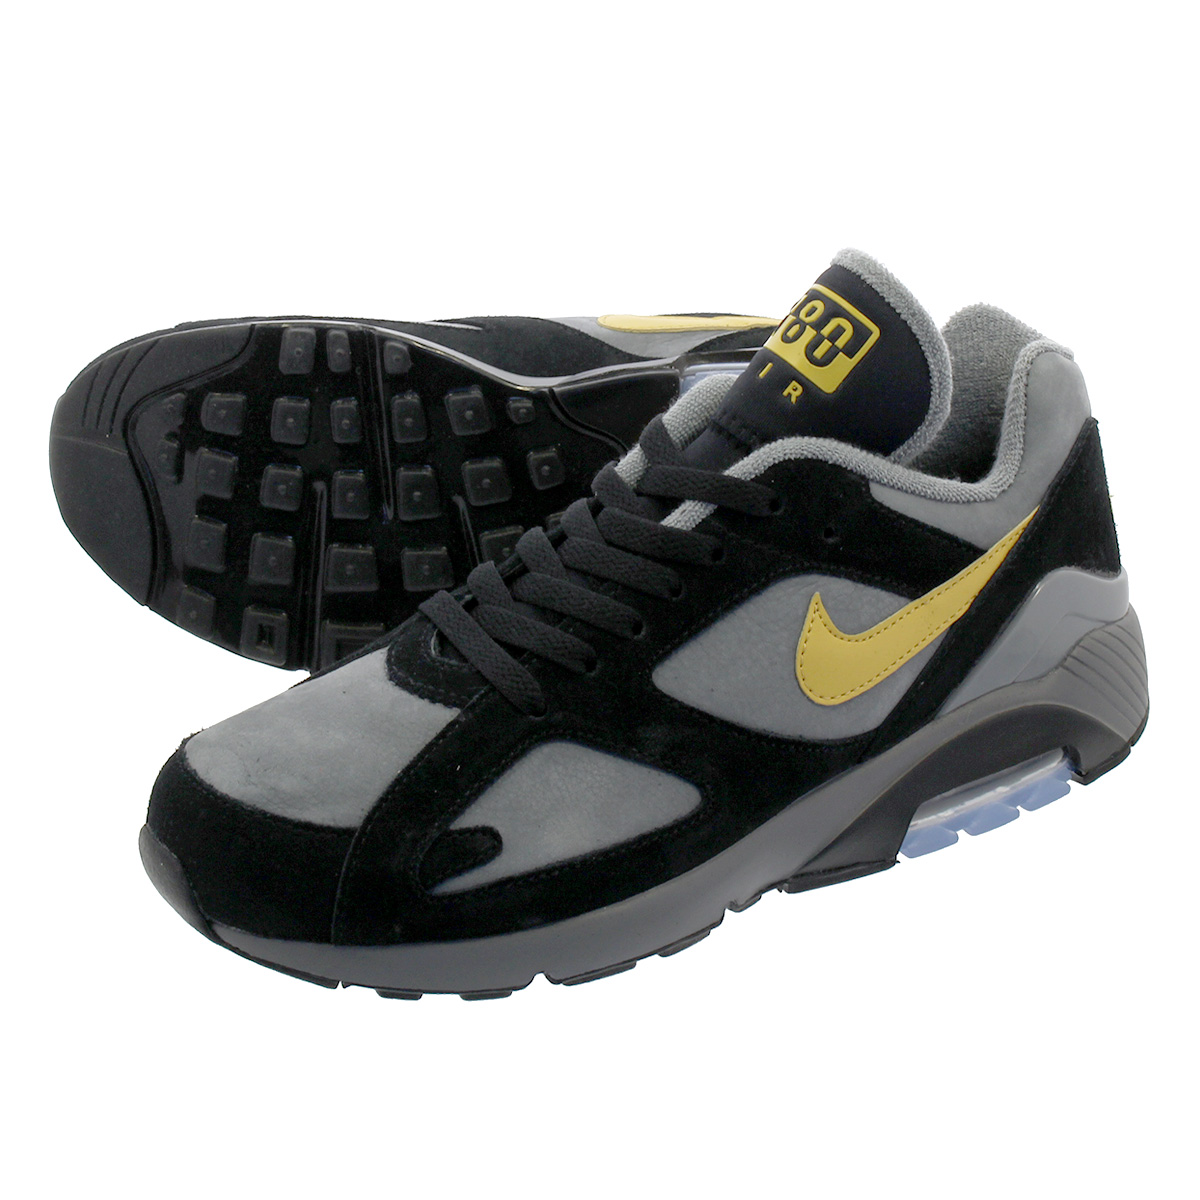 e3e844c1d9 NIKE AIR MAX 180 Nike air max 180 COOL GREY/WHEAT GOLD/BLACK av7023 ...